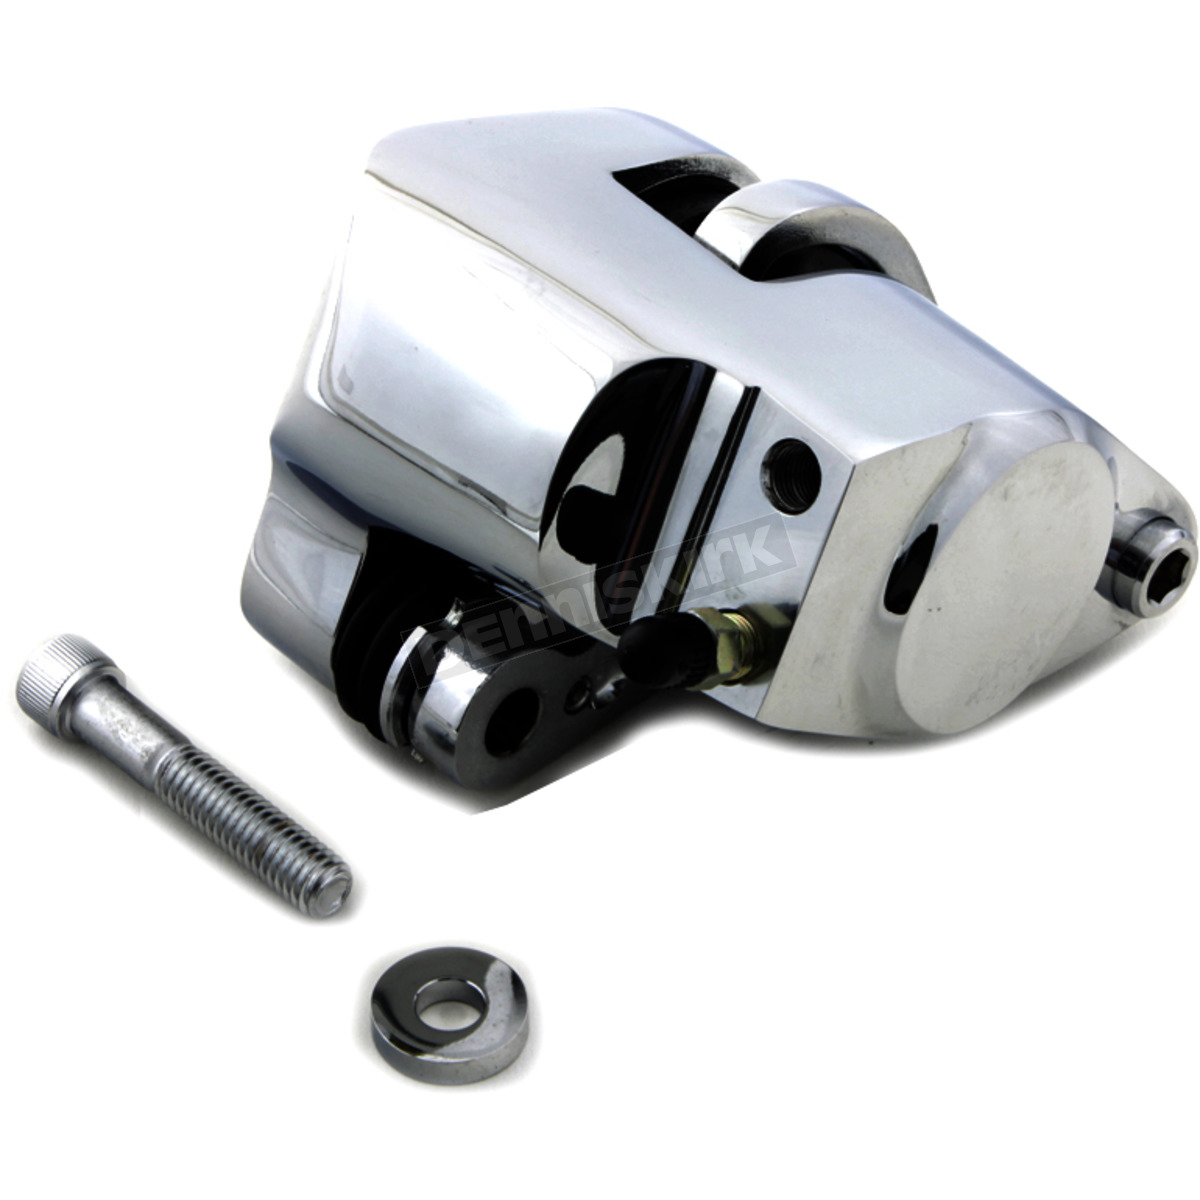 Follow Up Emulsifying Cleaners With A Sharp Spray Of Water Avoid Spraying Brake Calipers